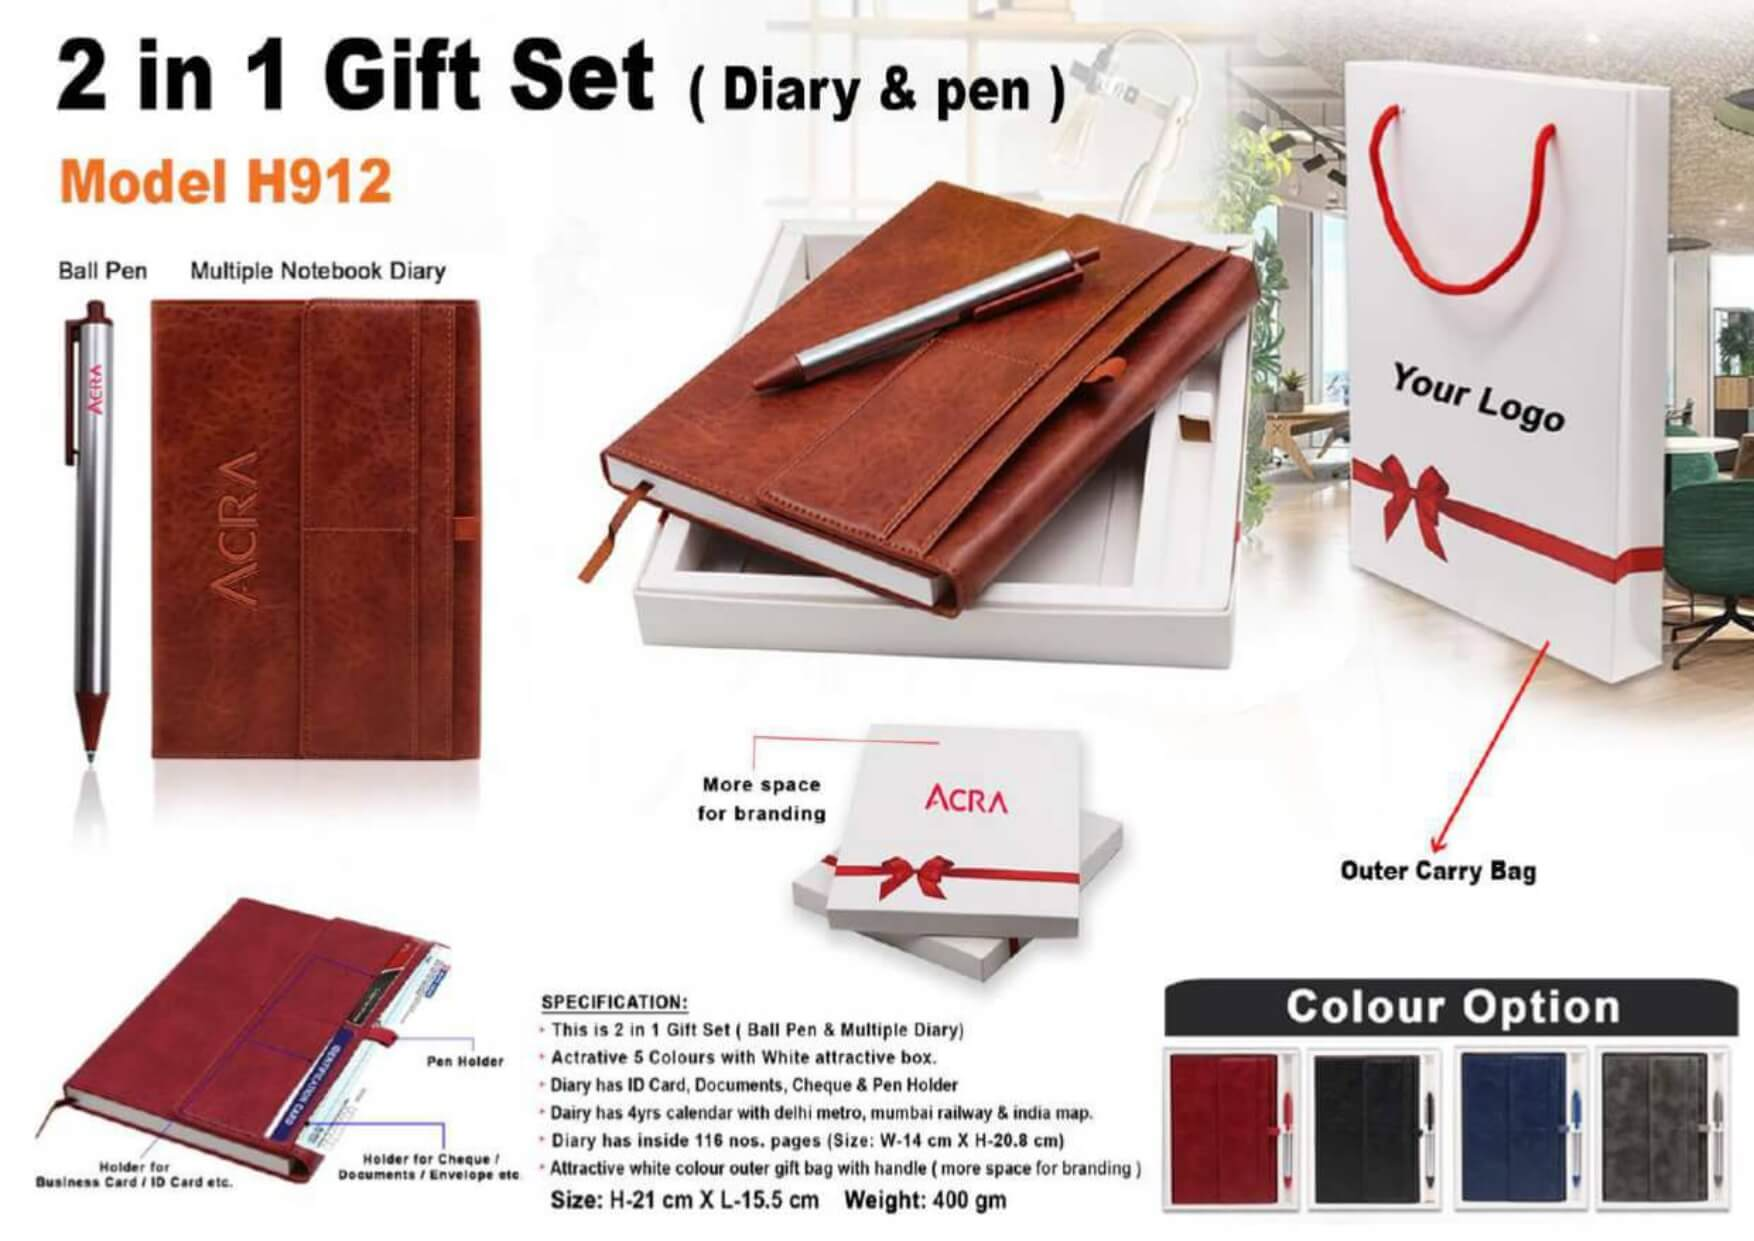 2 in 1 Gift Set Diary and Pen 912